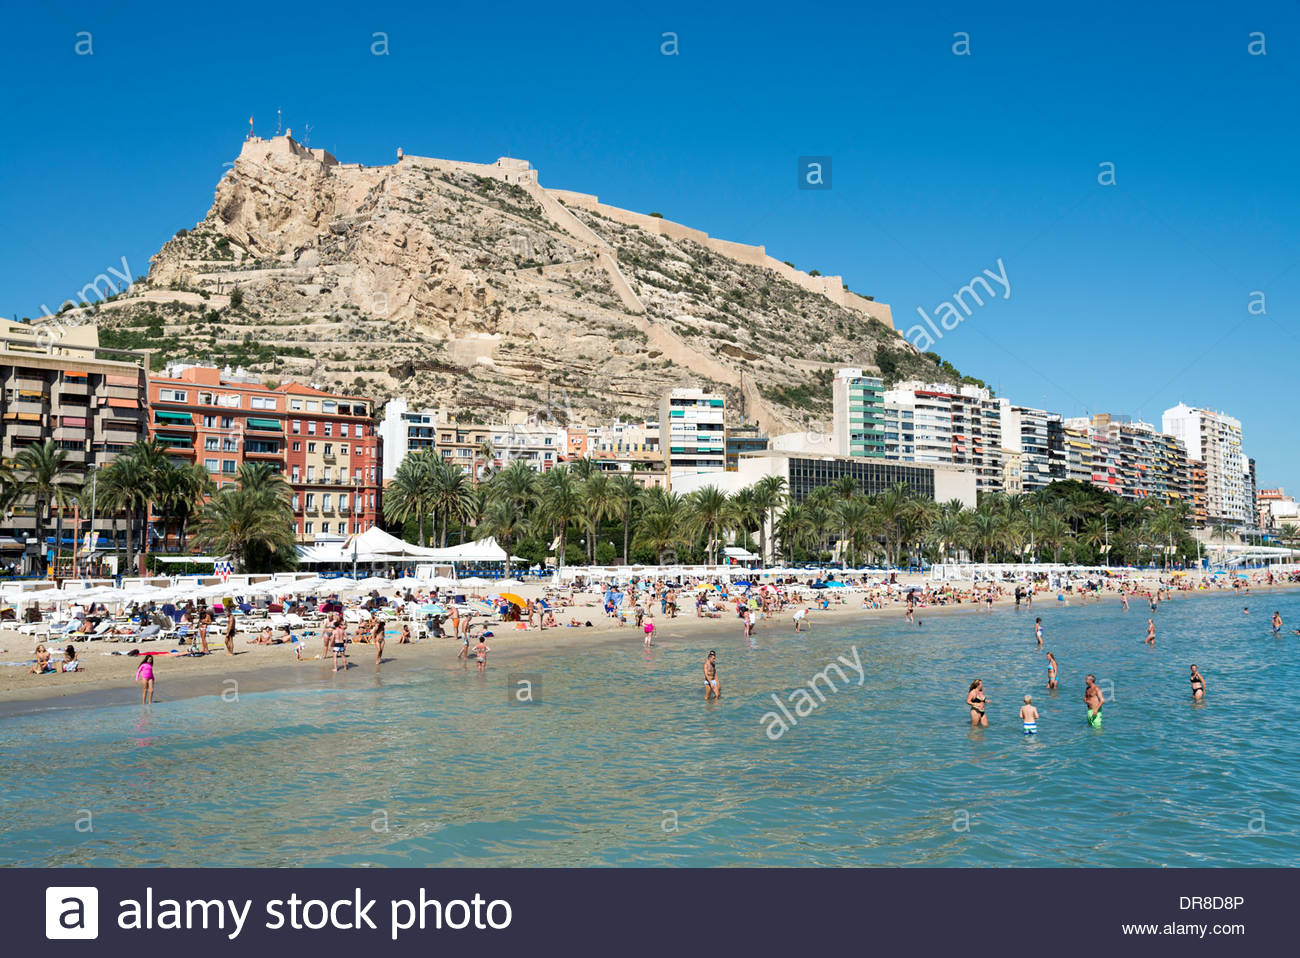 dating costa blanca spain Costa blanca, spain there appears to be a f/b page on singles clubs there not for dating but to meet people in resort.